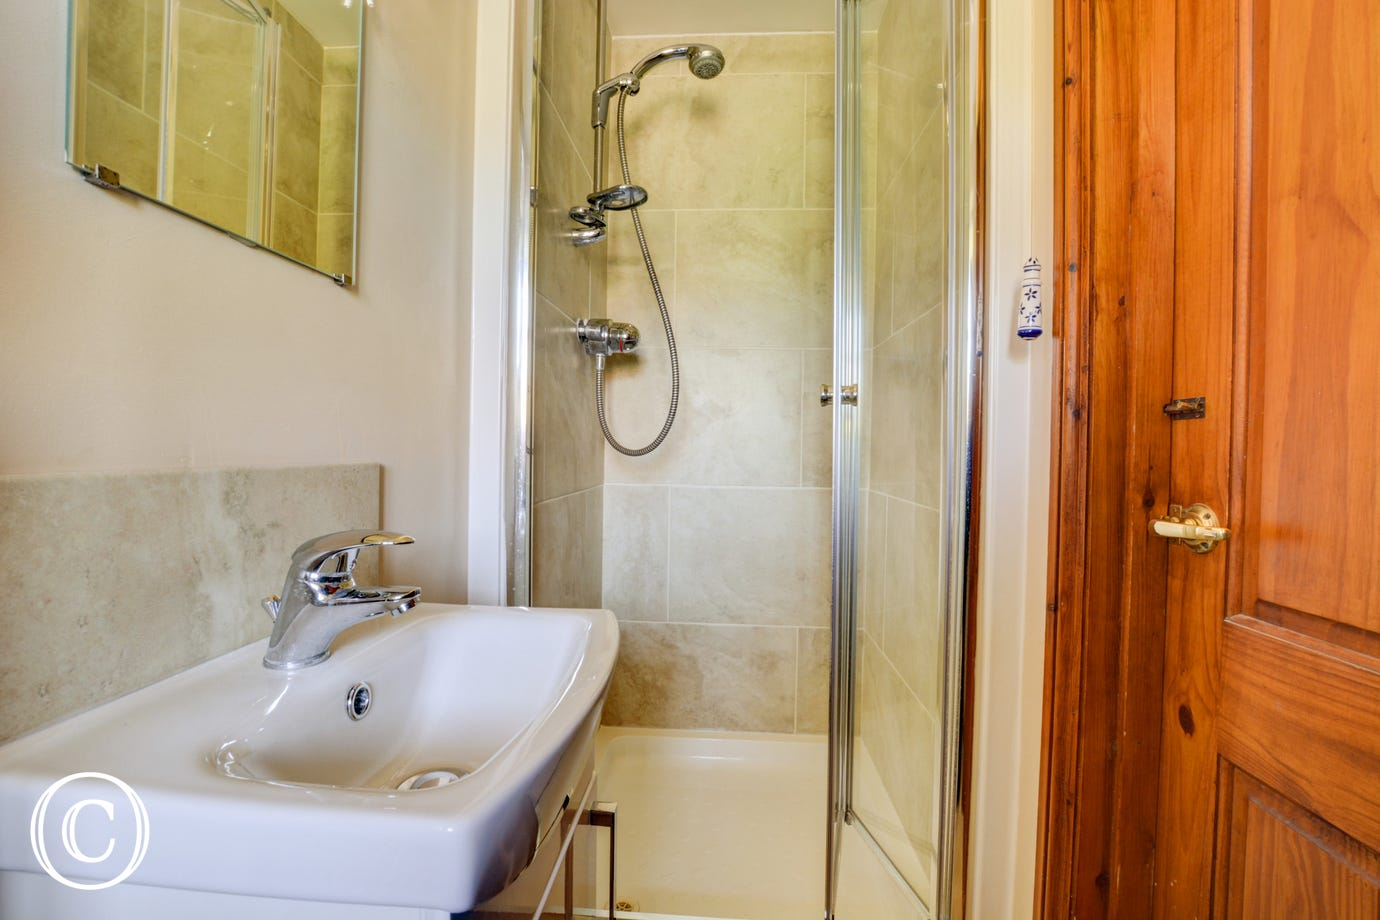 A separate downstairs shower room with handbasin and toilet.